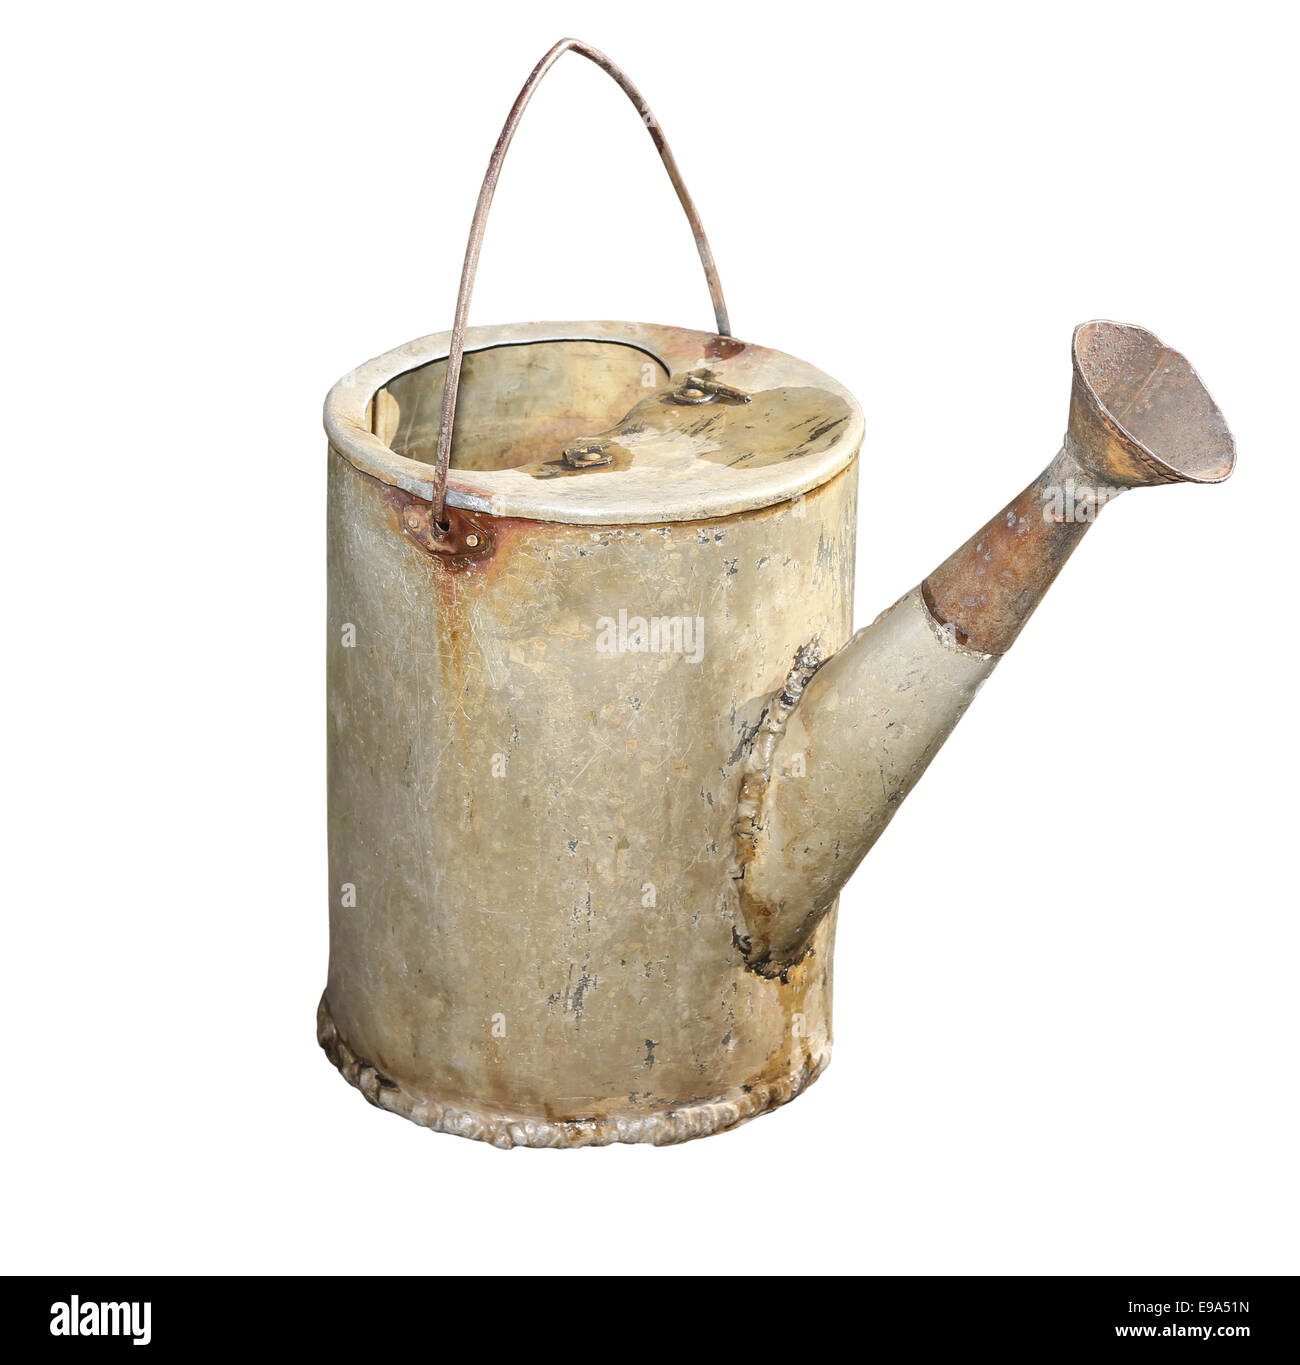 Old galvanized watering can - Stock Image